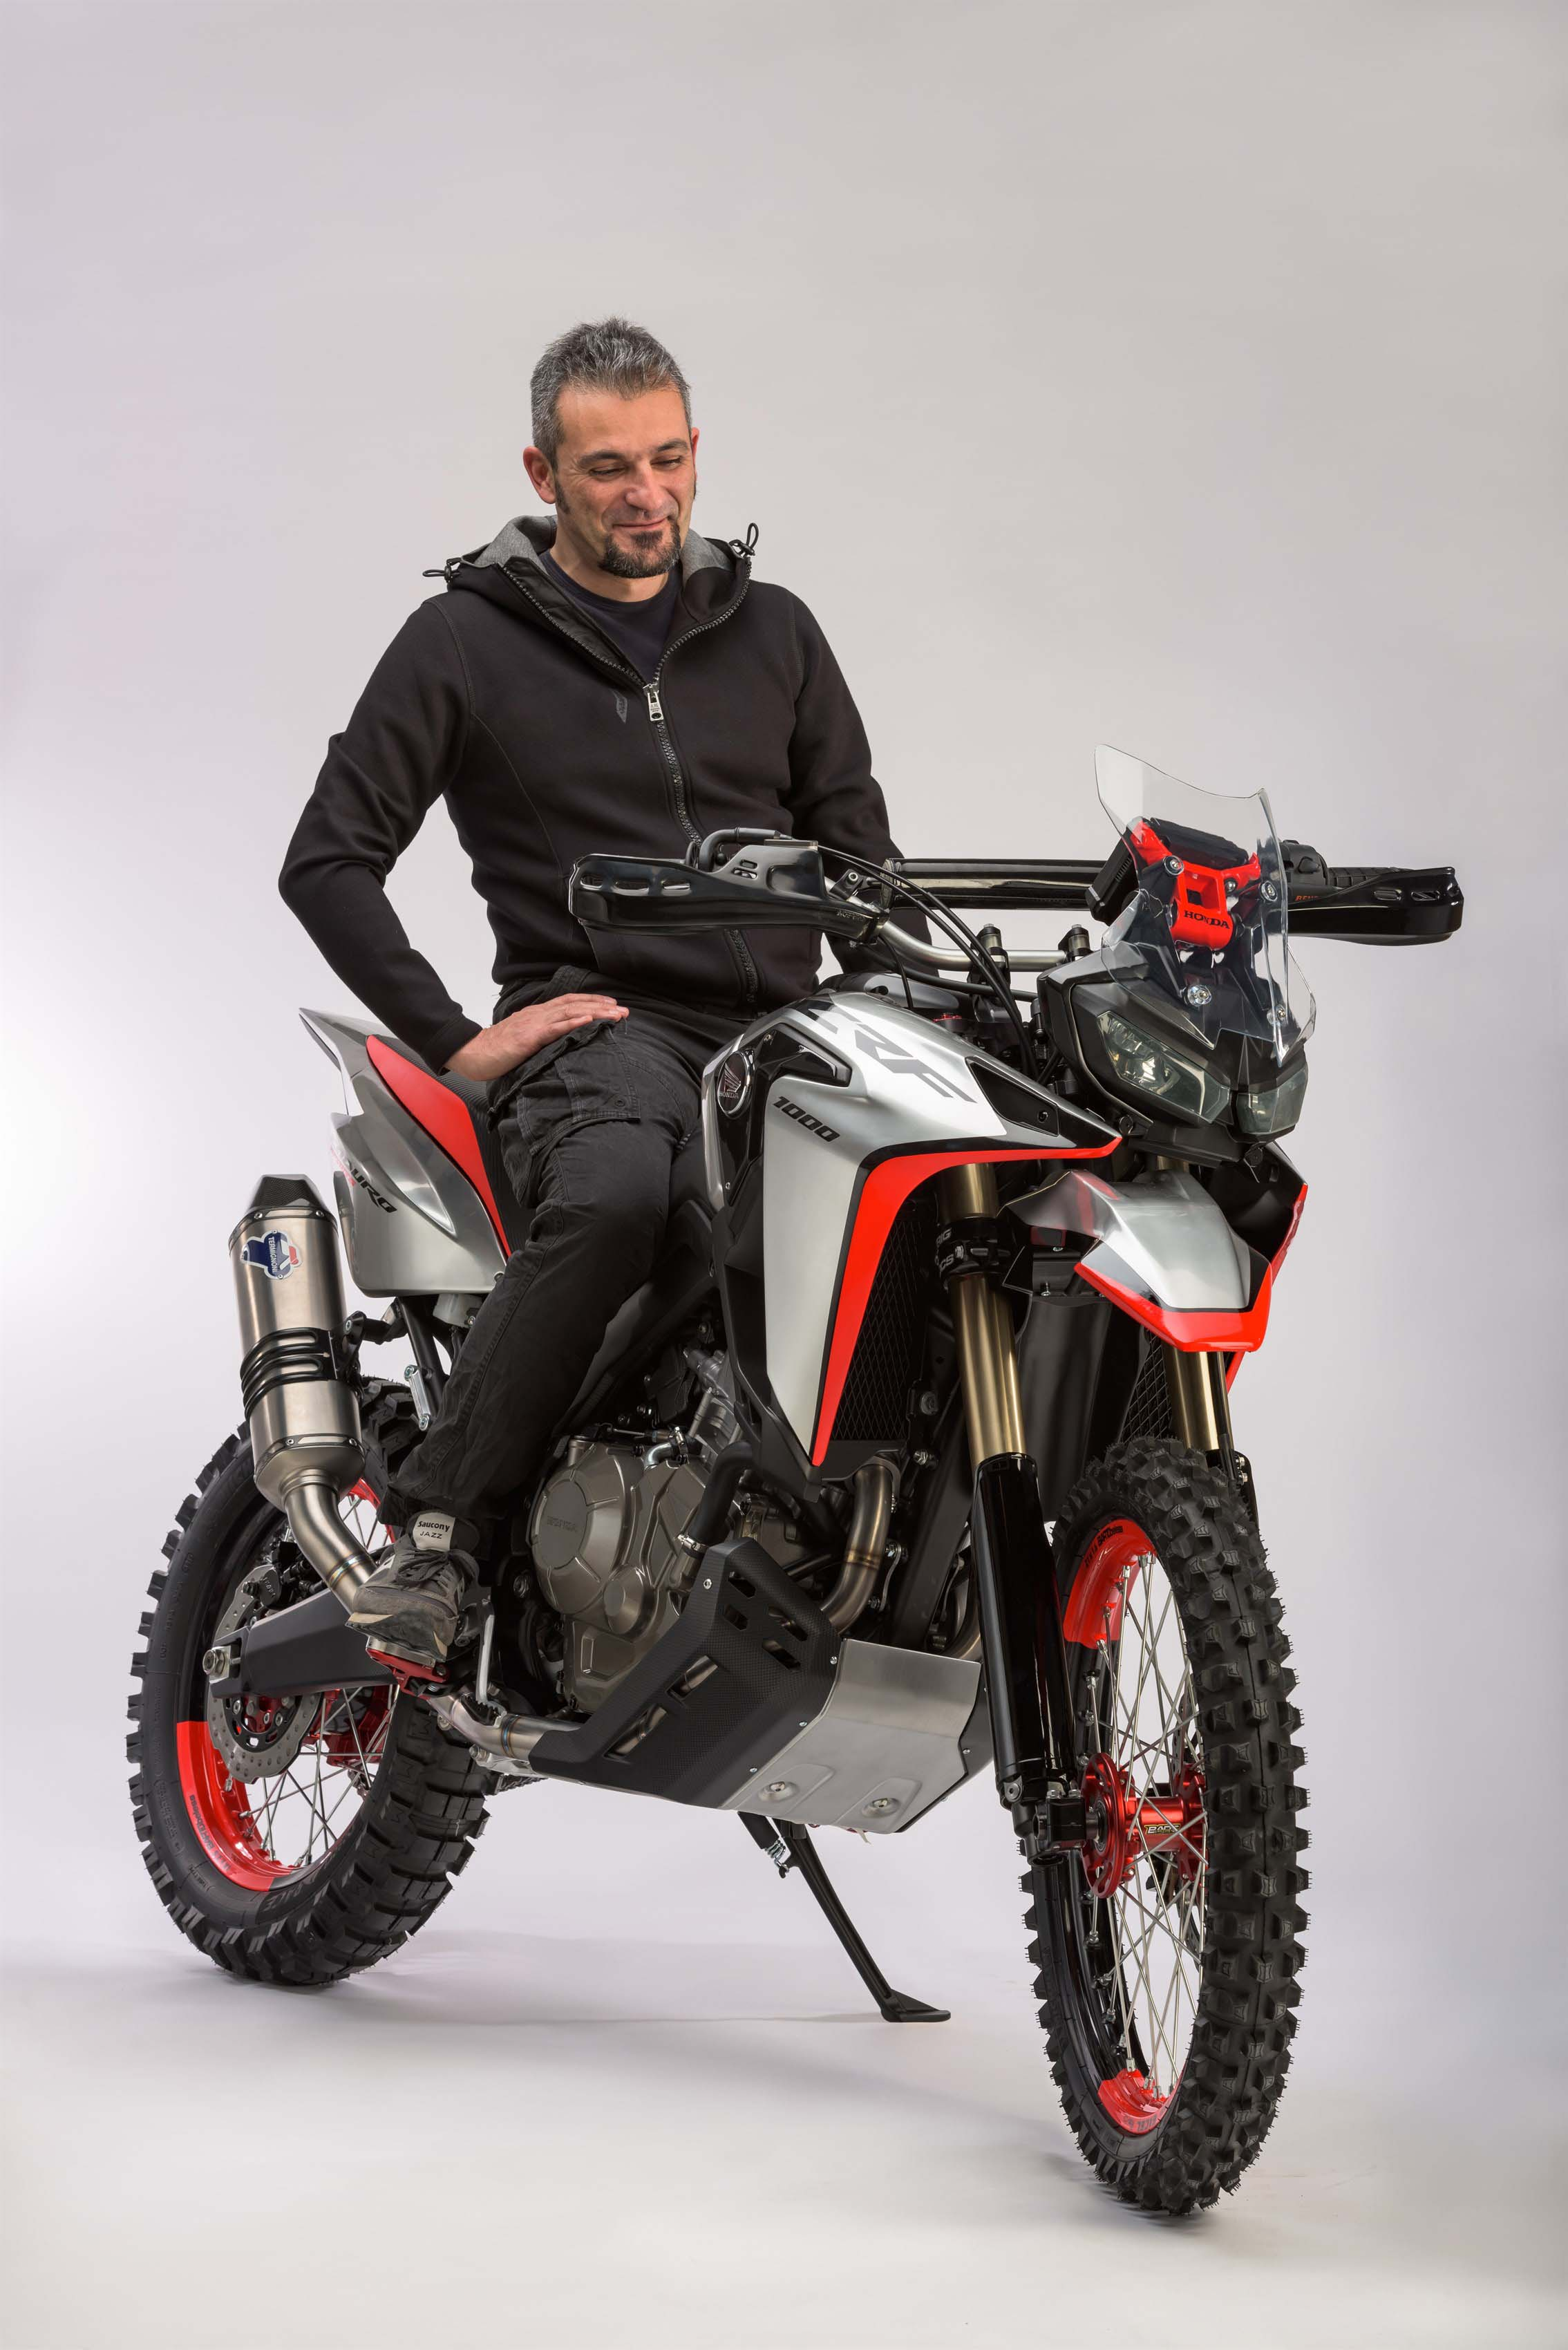 Best Enduro Motorcycle >> Oh My! The Honda Africa Twin Enduro Sports Concept